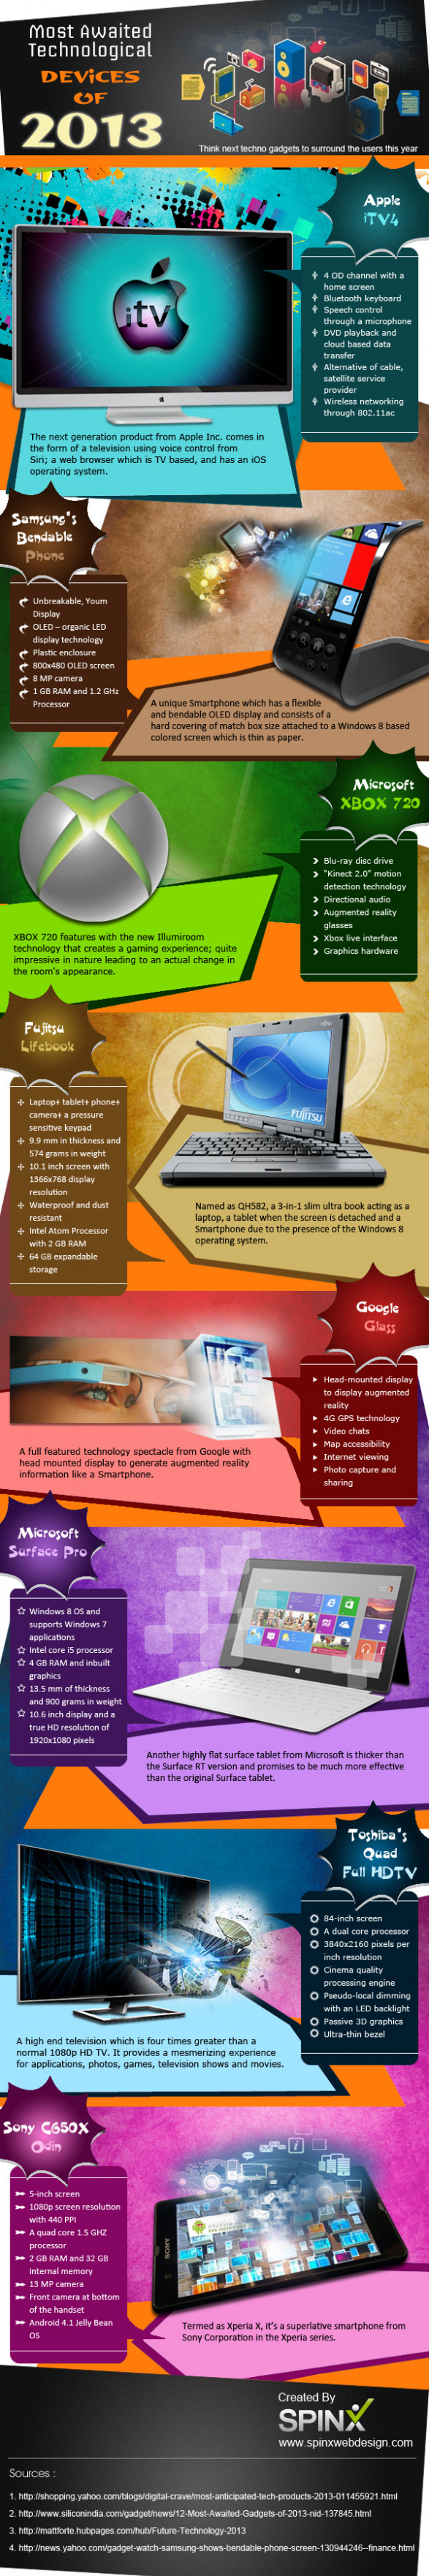 Most Awaited Technological Devices of 2013